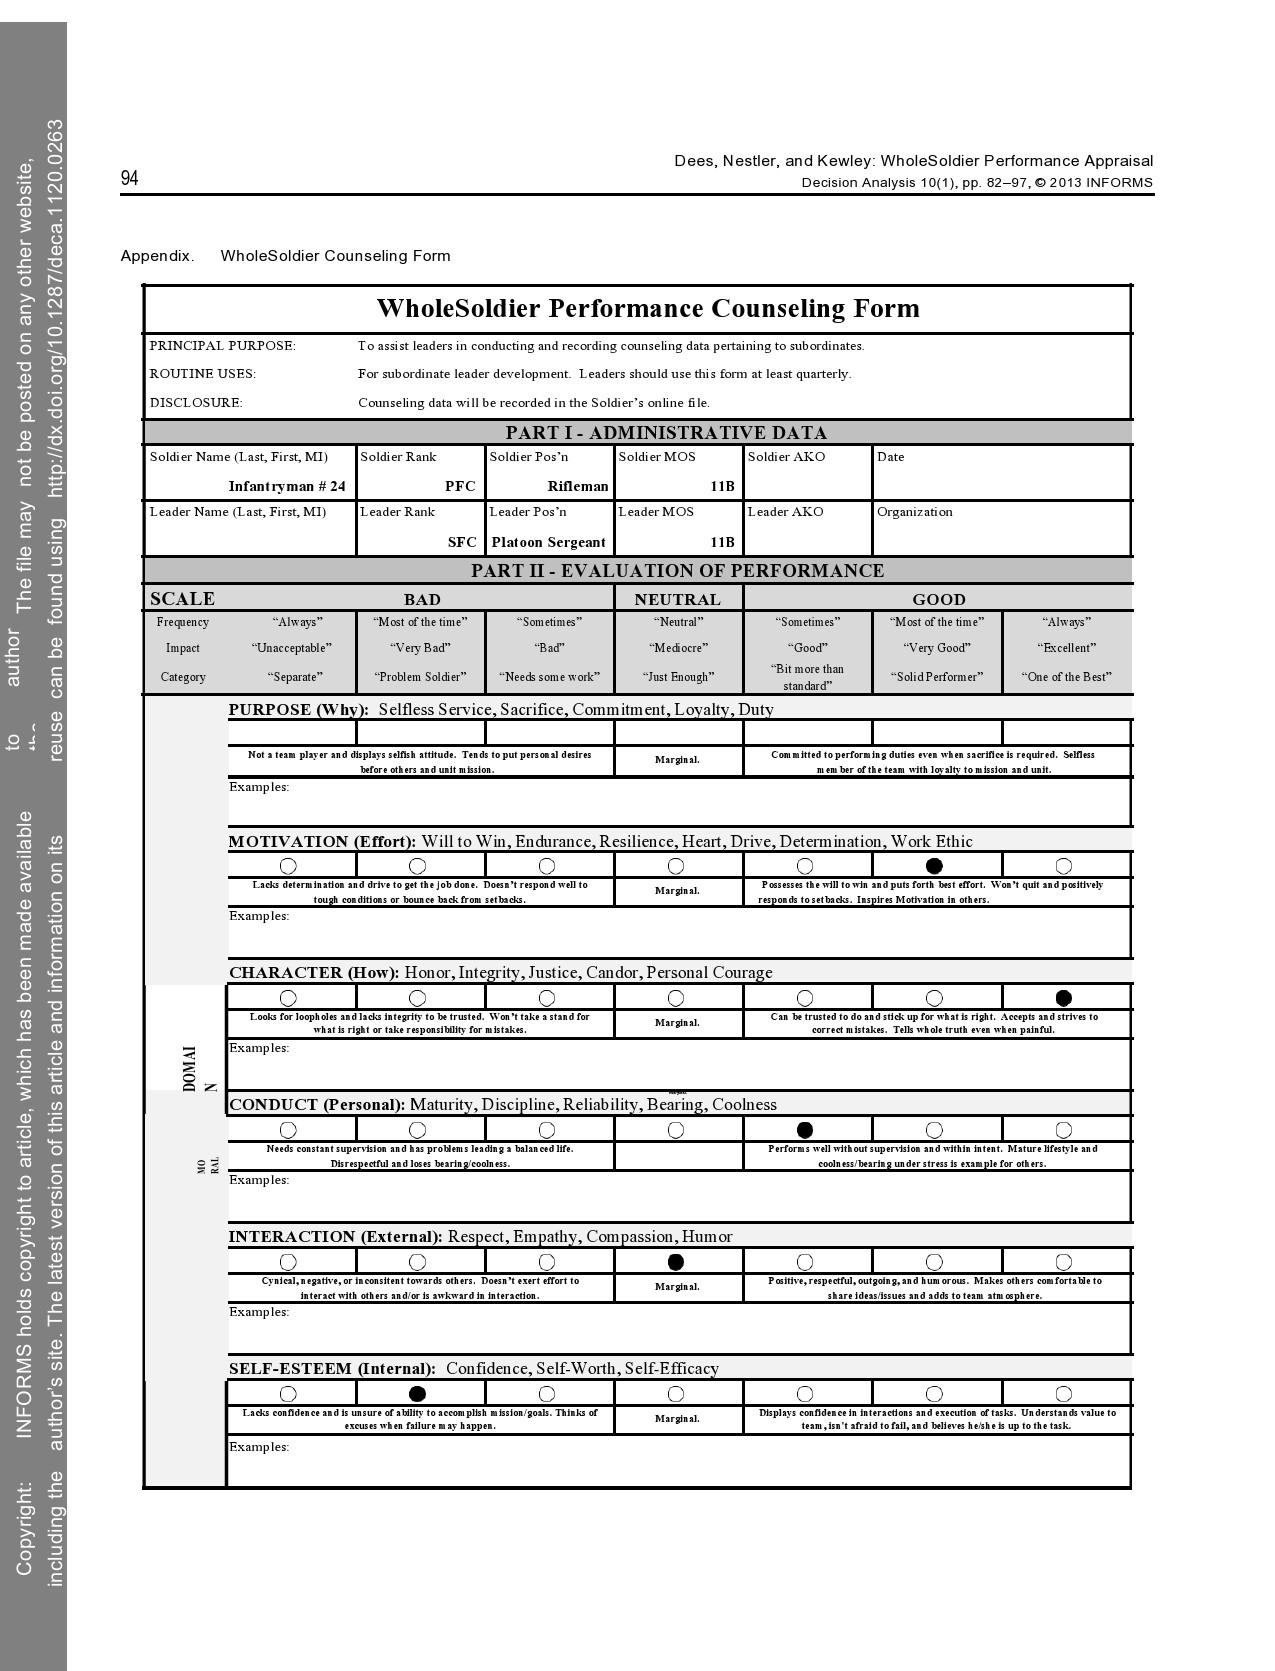 Free army counseling form 08